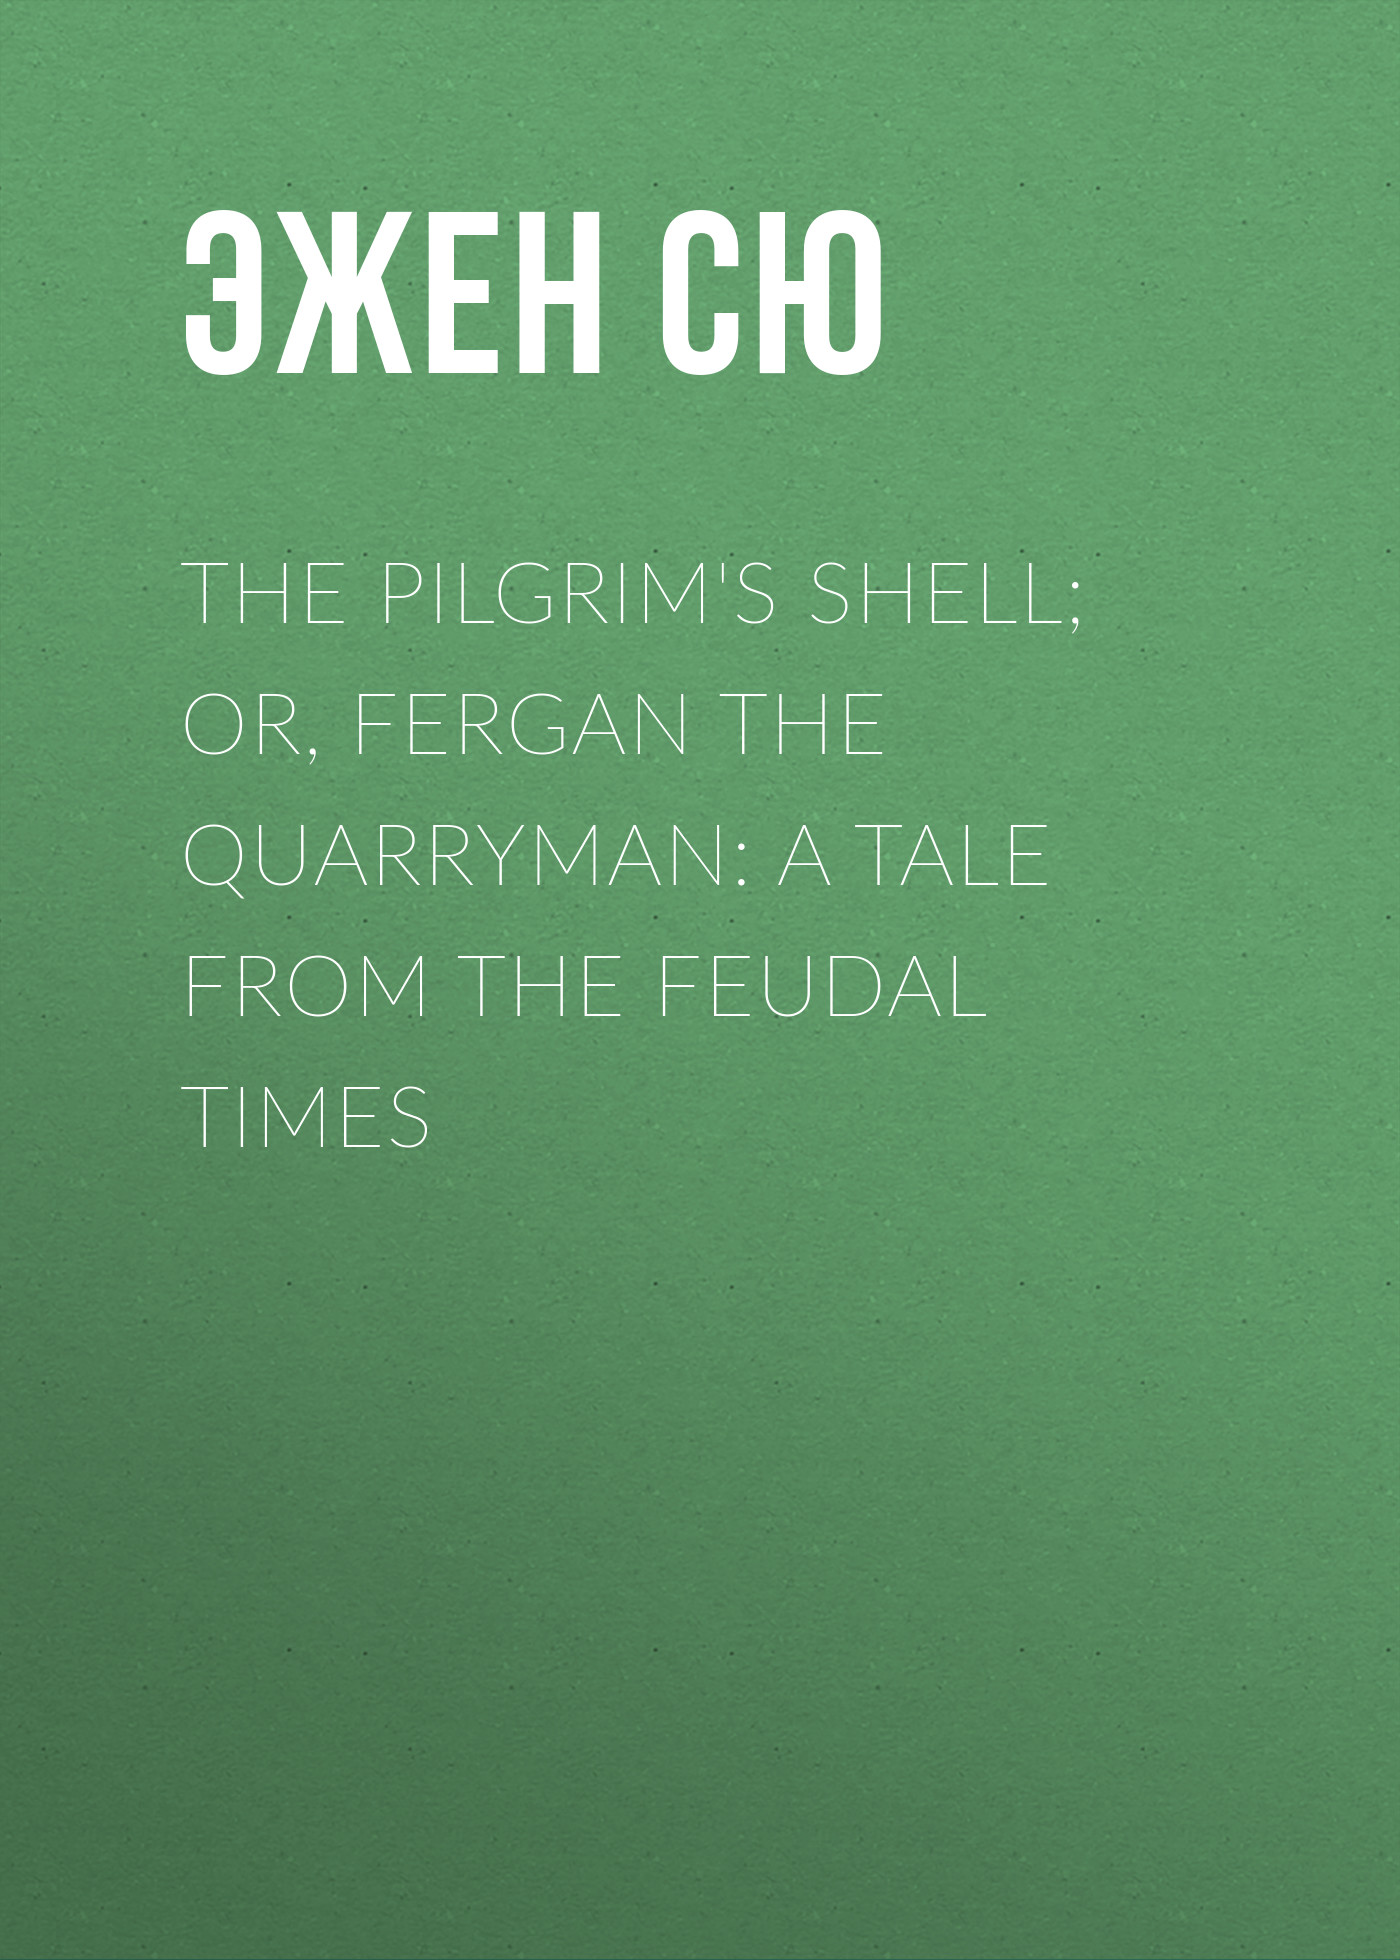 Эжен Сю The Pilgrim's Shell; Or, Fergan the Quarryman: A Tale from the Feudal Times эжен сю the gold sickle or hena the virgin of the isle of sen a tale of druid gaul